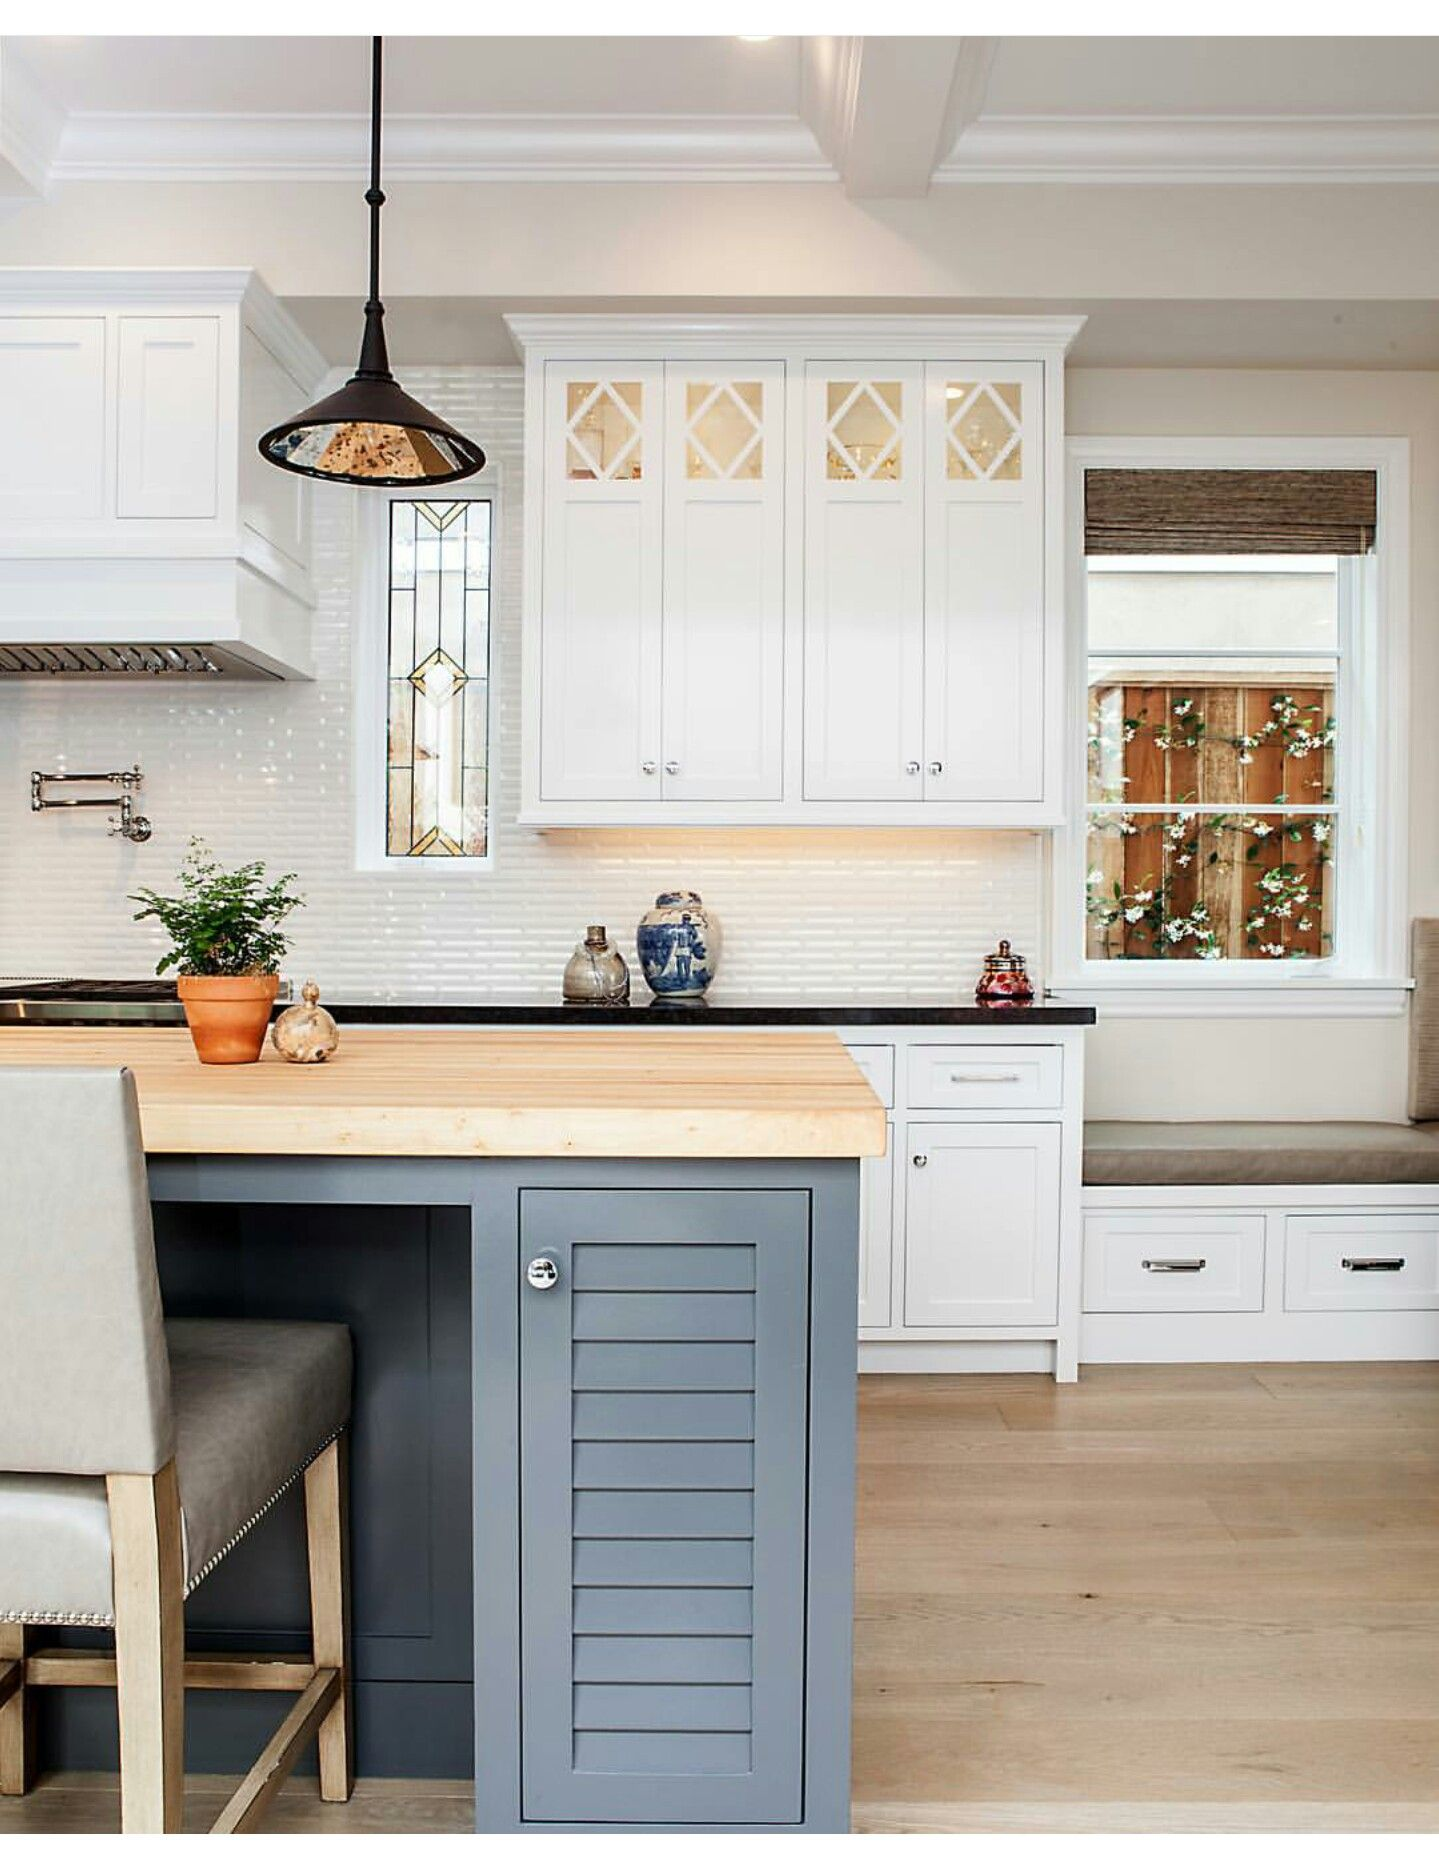 Pin by Cayce on kitchen | Pinterest | Kitchens and House